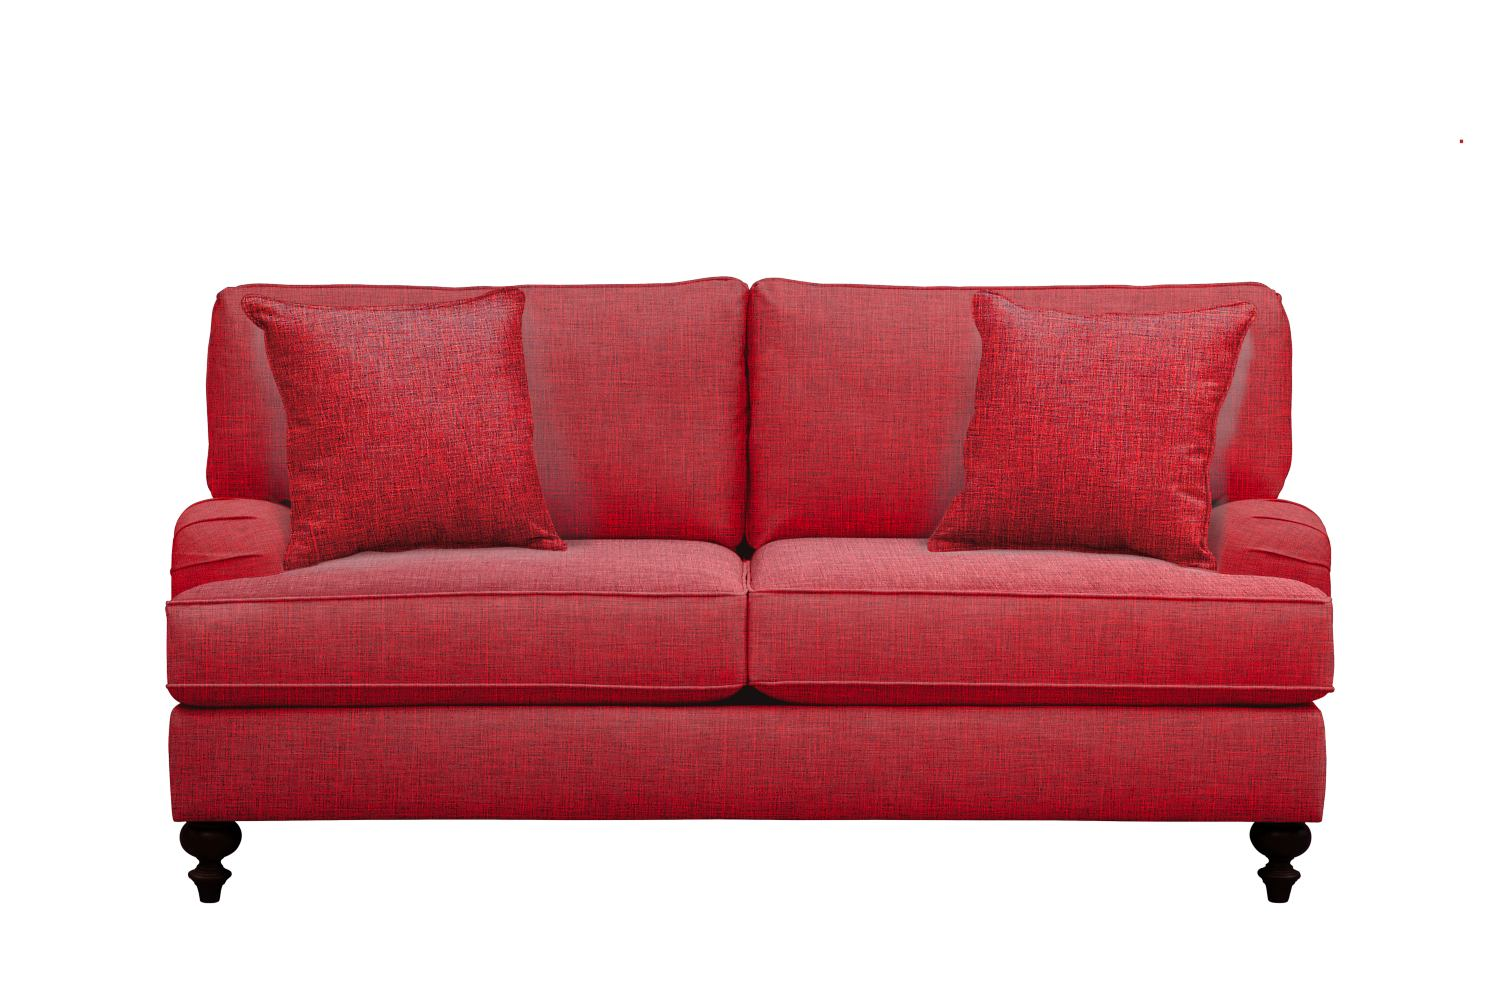 "Living Room Furniture - Avery English Arm Sofa 74"" Milford II Red w/ Milford II Red  Pillow"